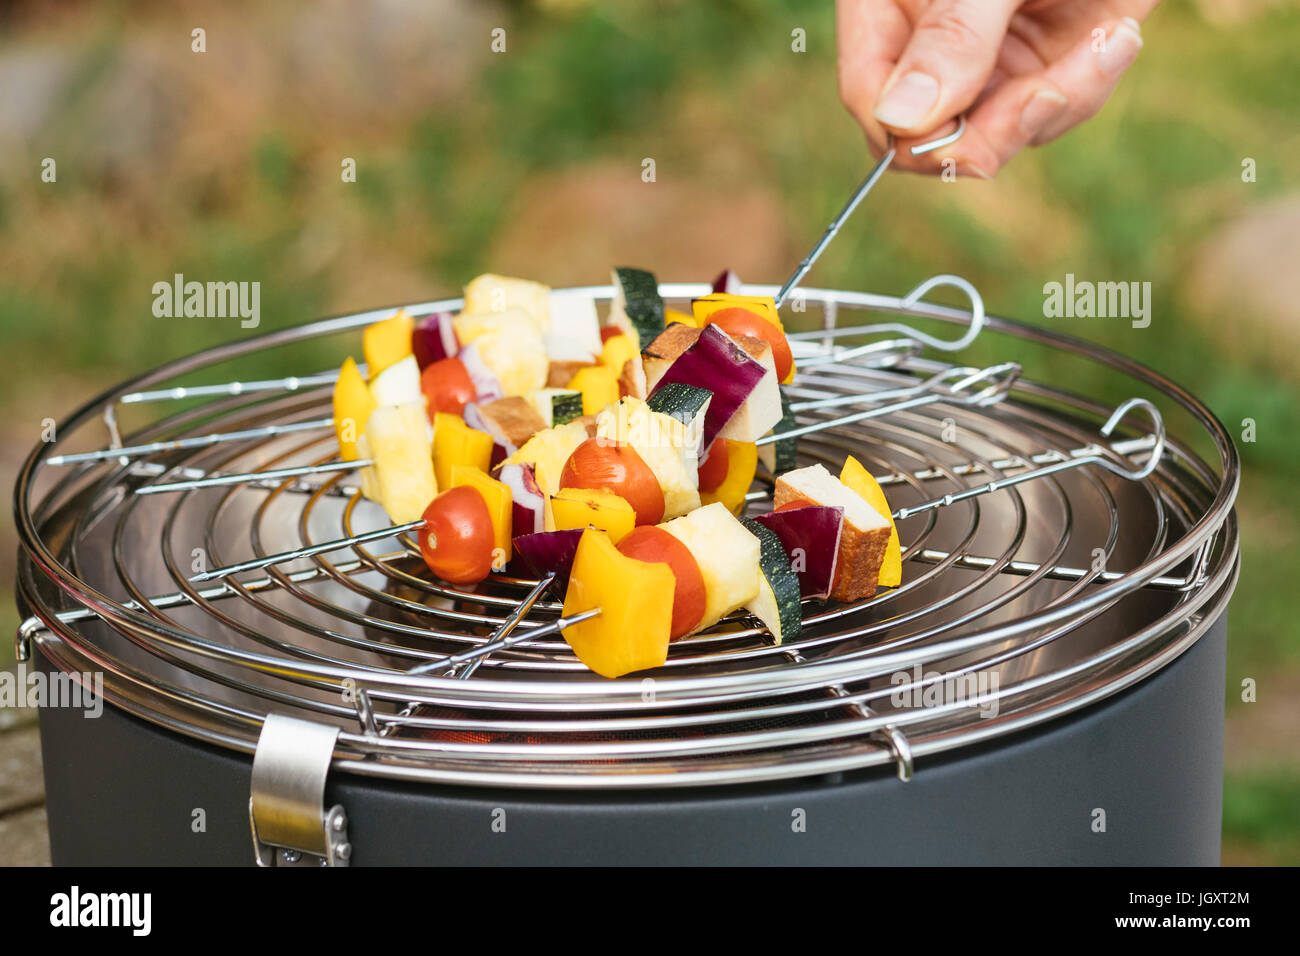 Man puts vegan kebabs with vegetables and tofu on a table grill. Stock Photo